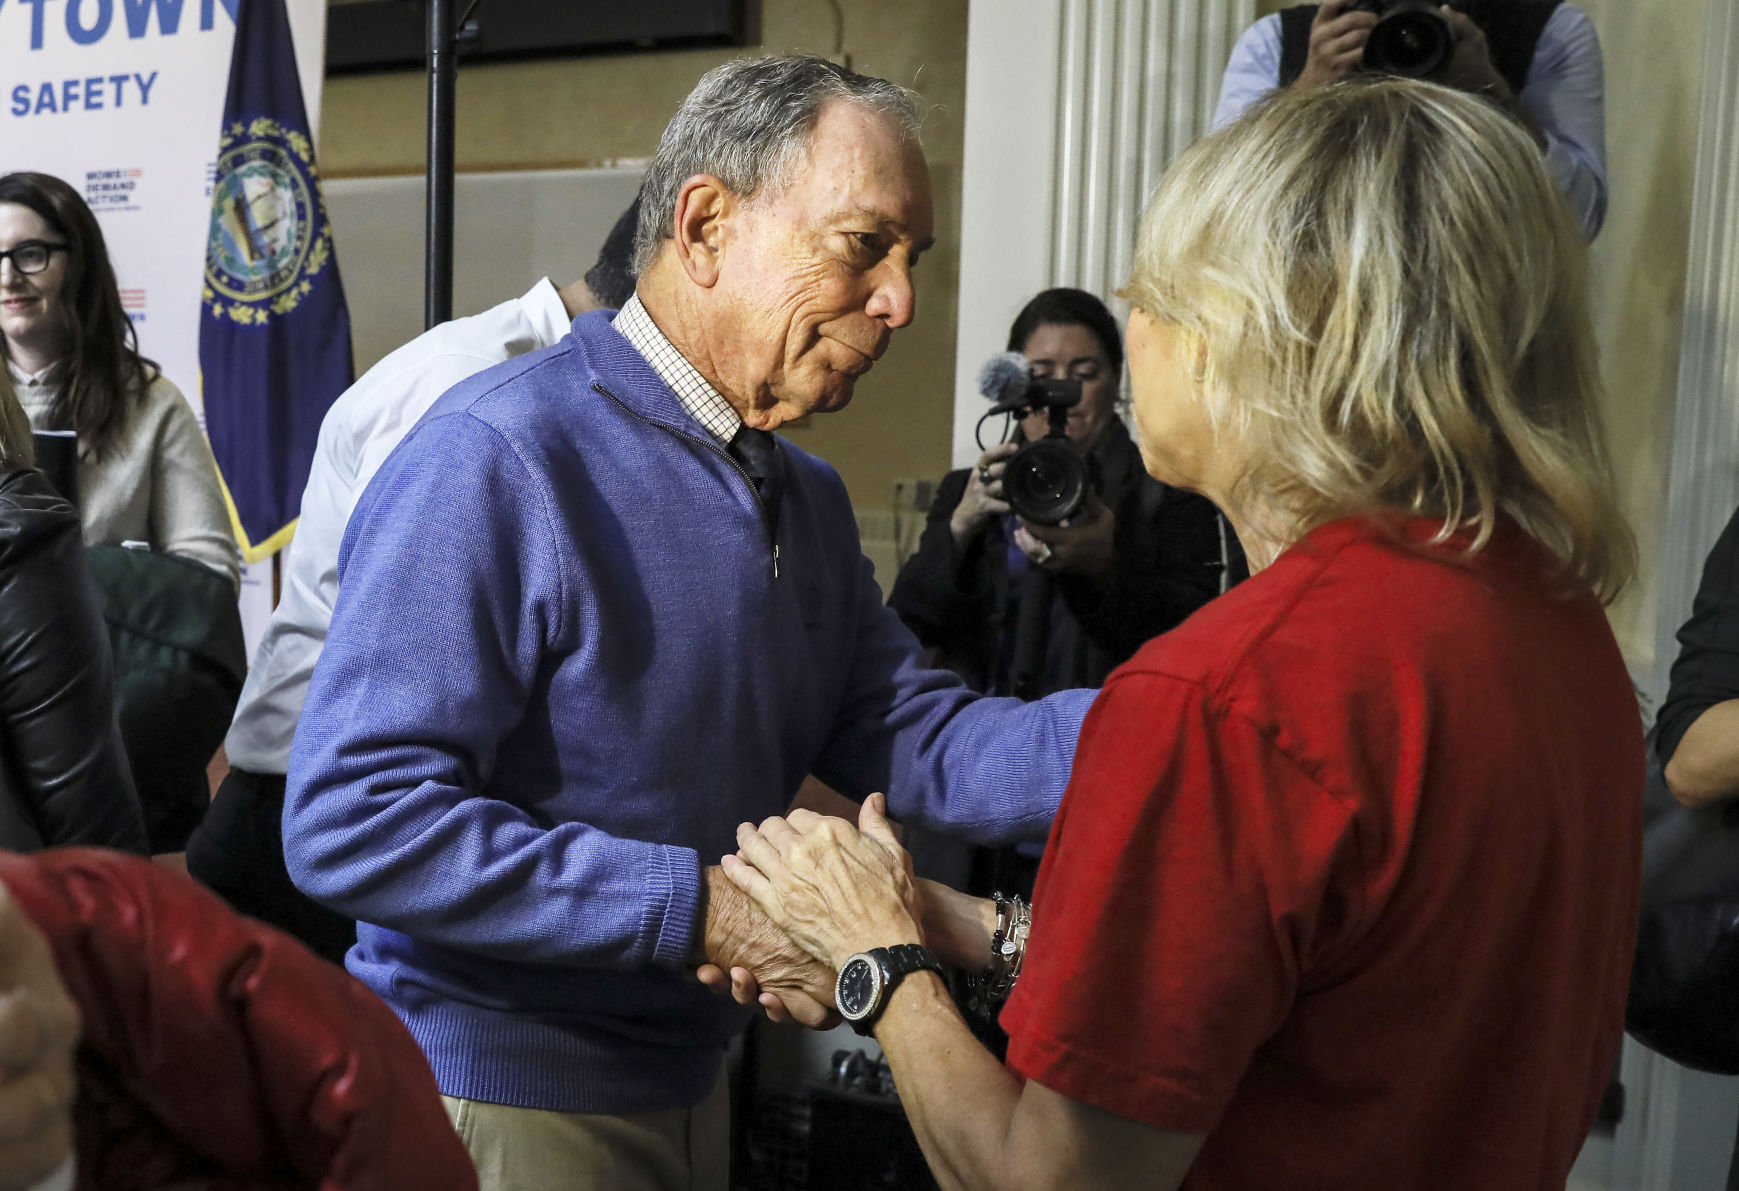 Bloomberg's New Hampshire event fuels White House bid talk